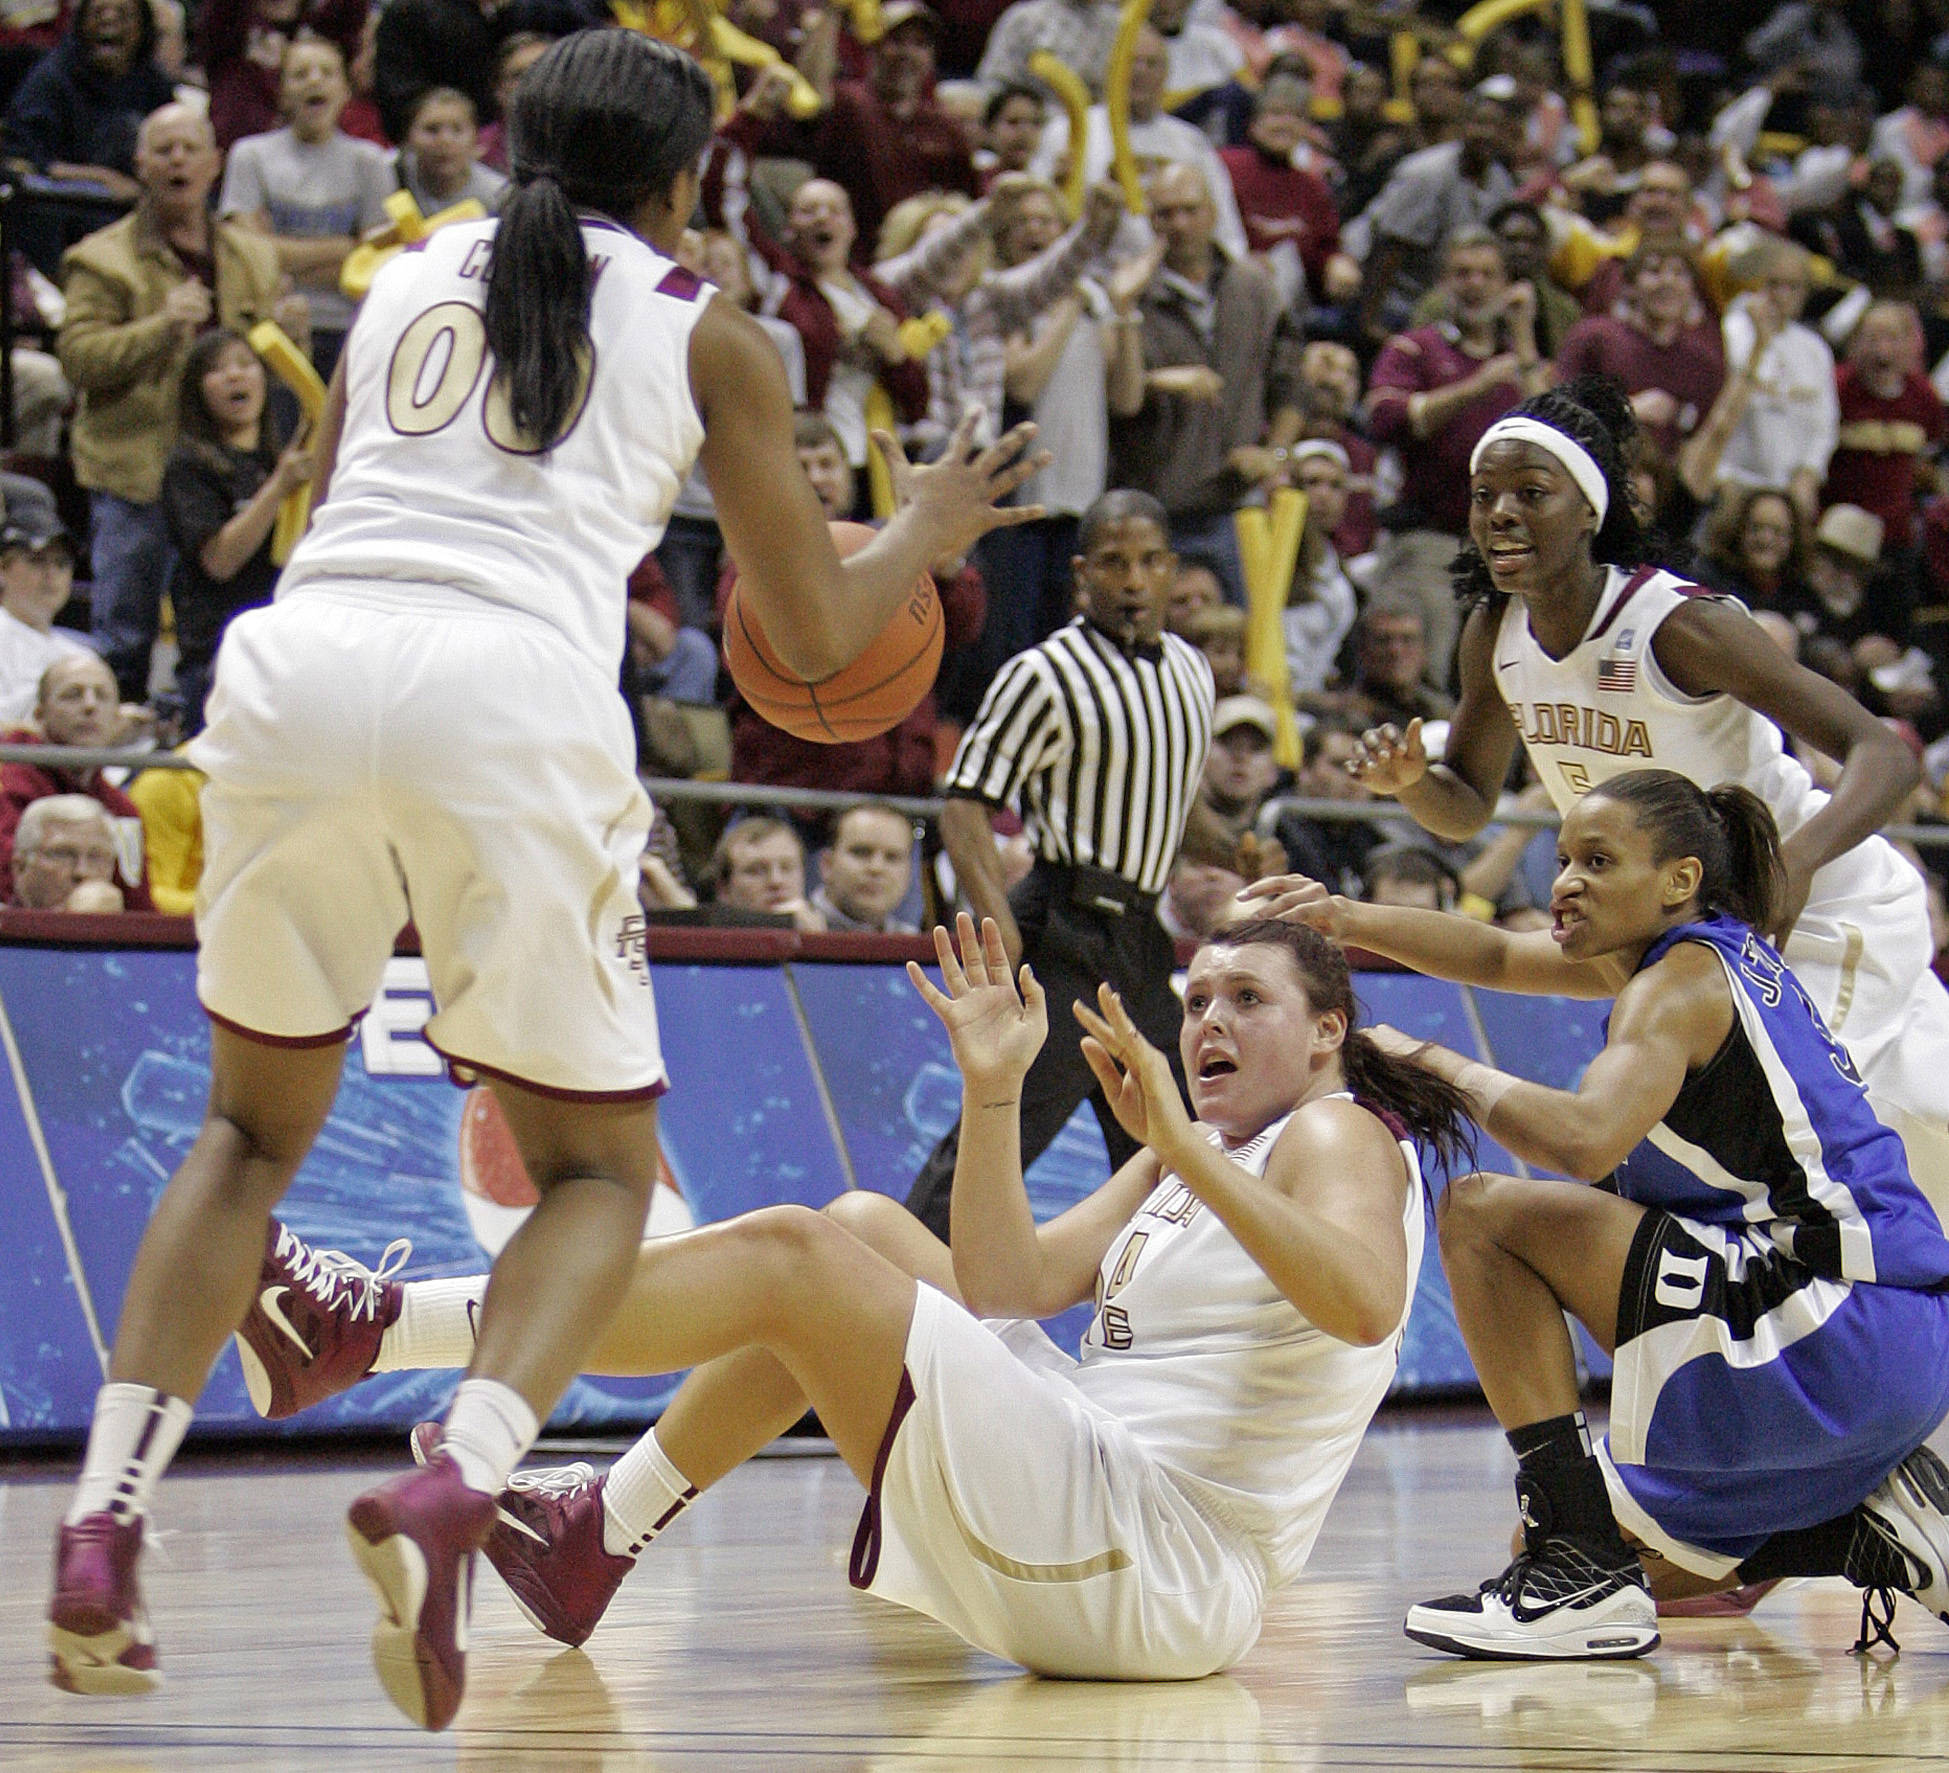 Florida State's Cierra Bravard, center, passes to teammate Chasity Clayton, left, after fighting with Duke's Jasmine Thomas, front right, for a loose ball in the second half of an NCAA college basketball game which Duke won 87-70  on Friday, Jan. 14, 2011, in Tallahassee, Fla. (AP Photo/Steve Cannon)